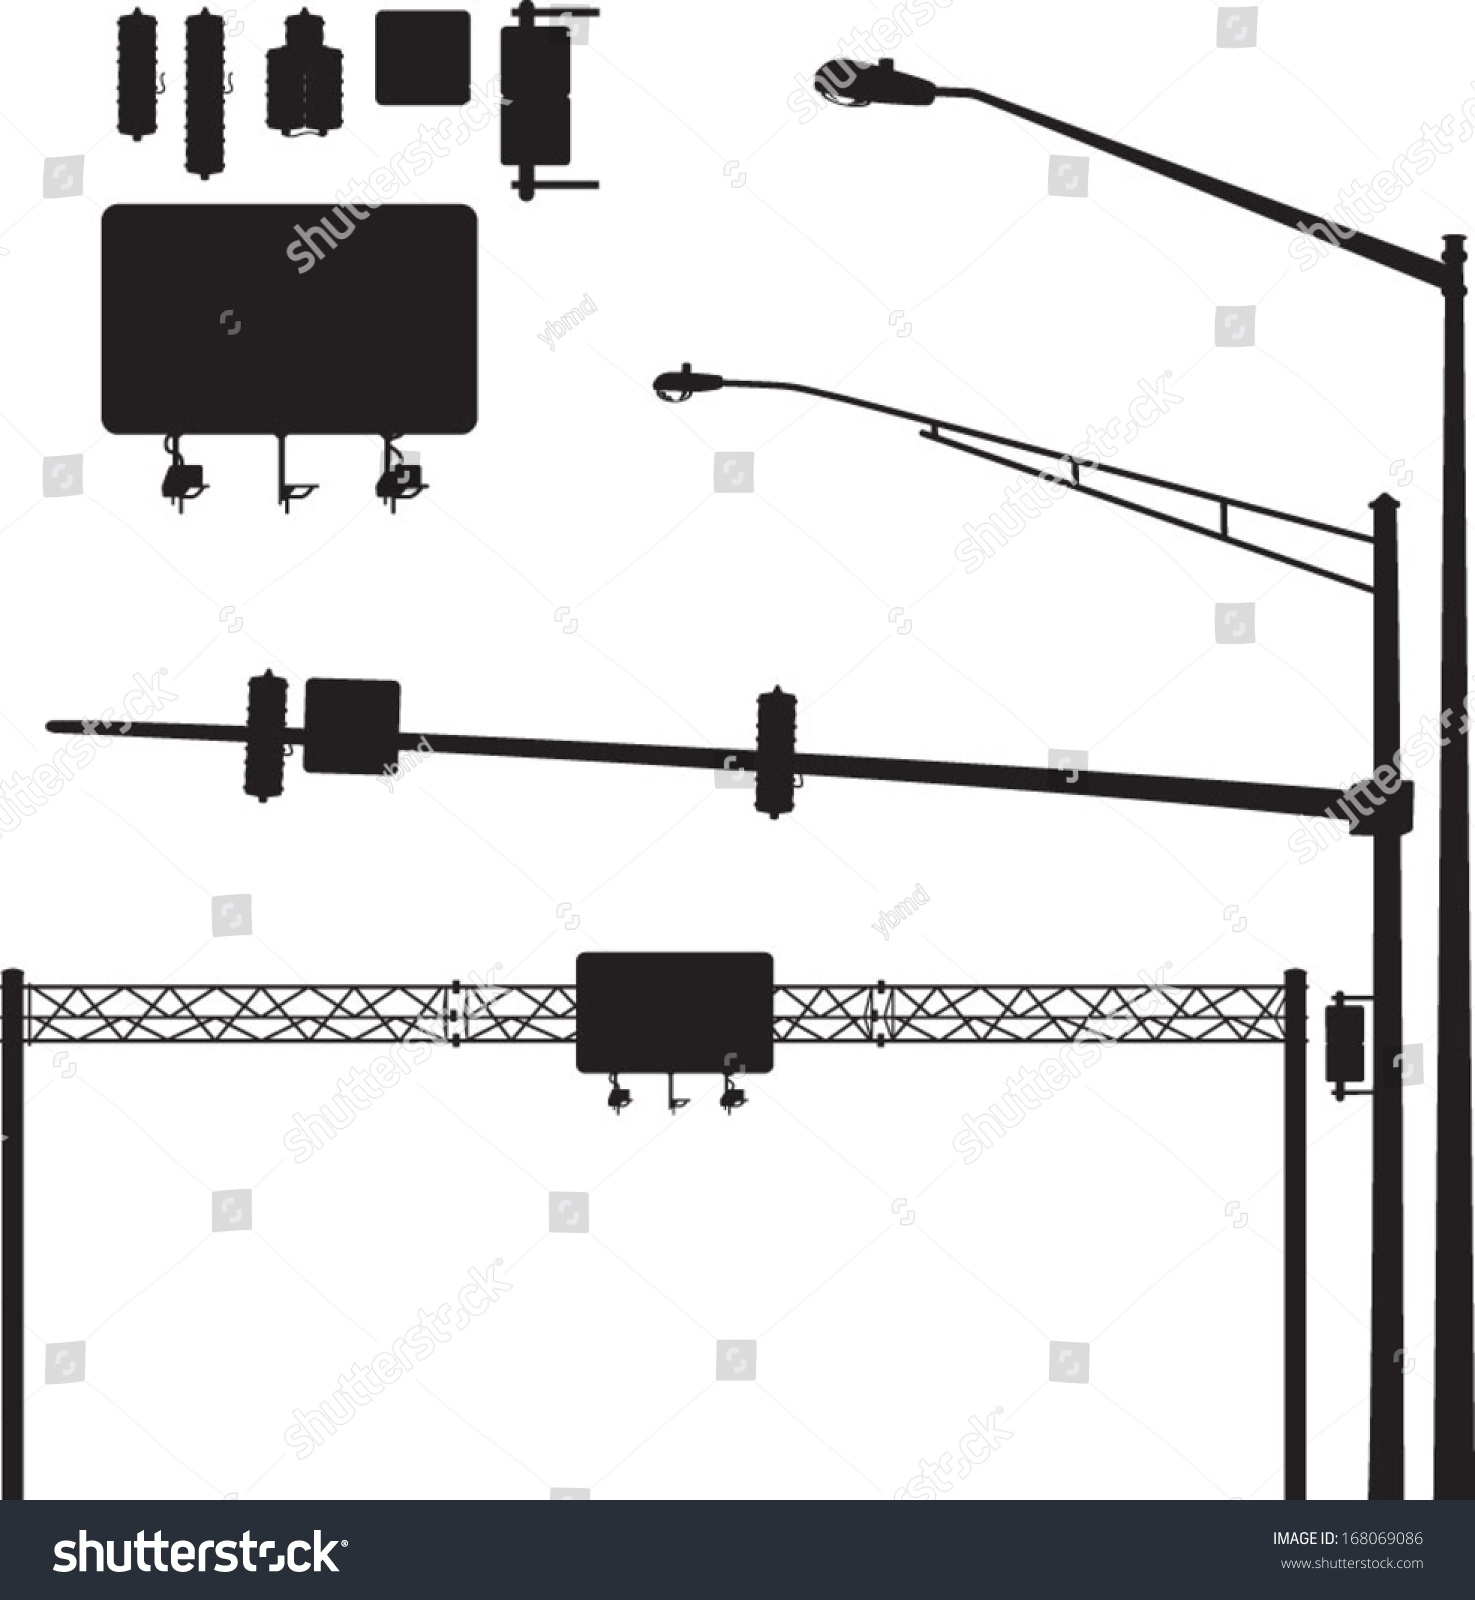 Vector Silhouettes Street Lights Highway Signs Stock Royalty Light Circuit Diagram Traffic Of And Its Easy To Mix